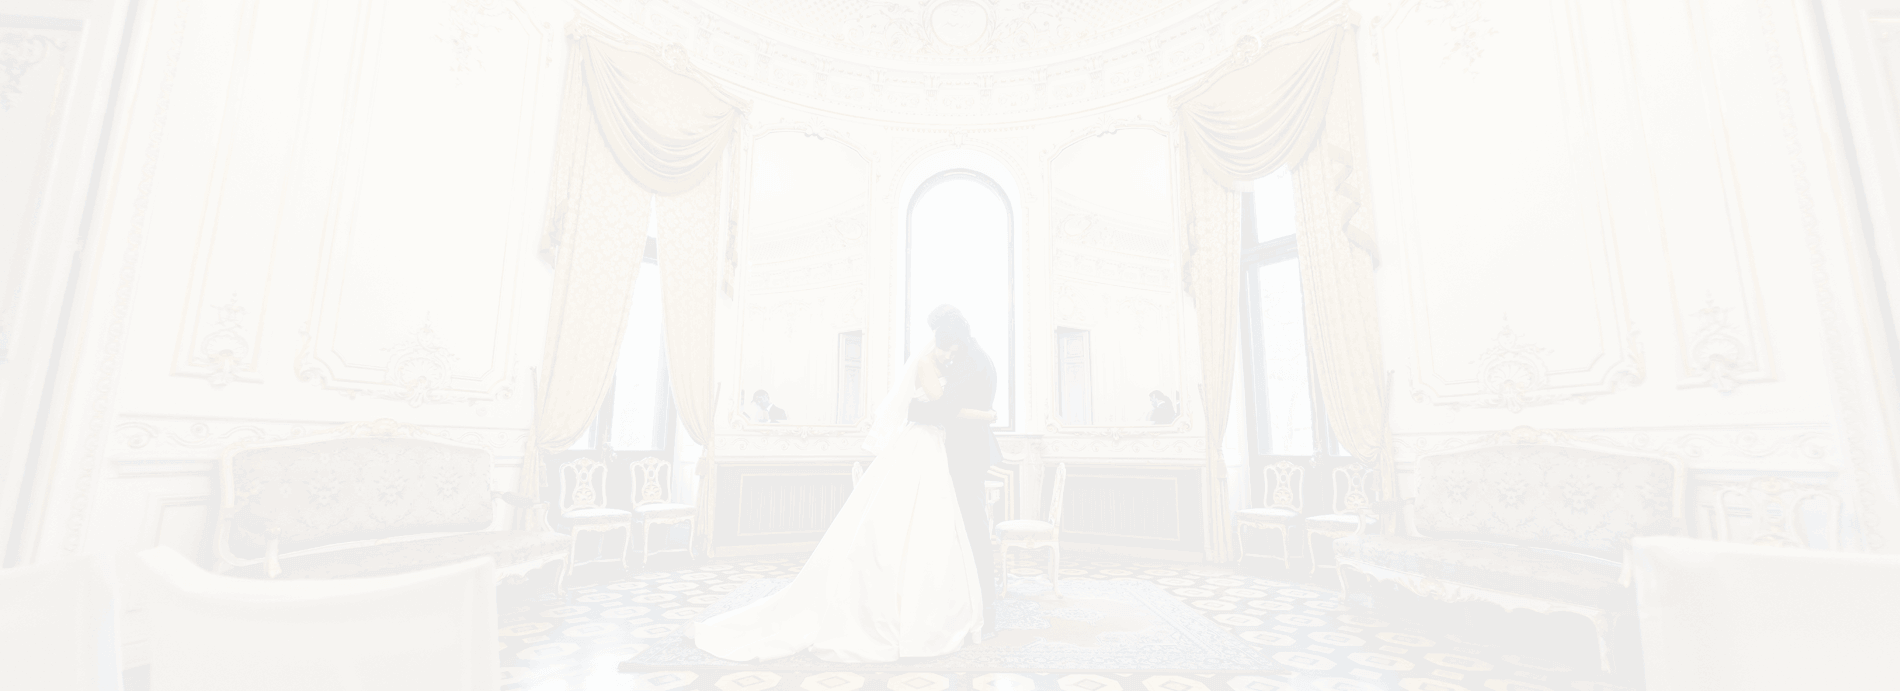 The 10 Most Magical Locations For Unforgettable Wedding Pictures